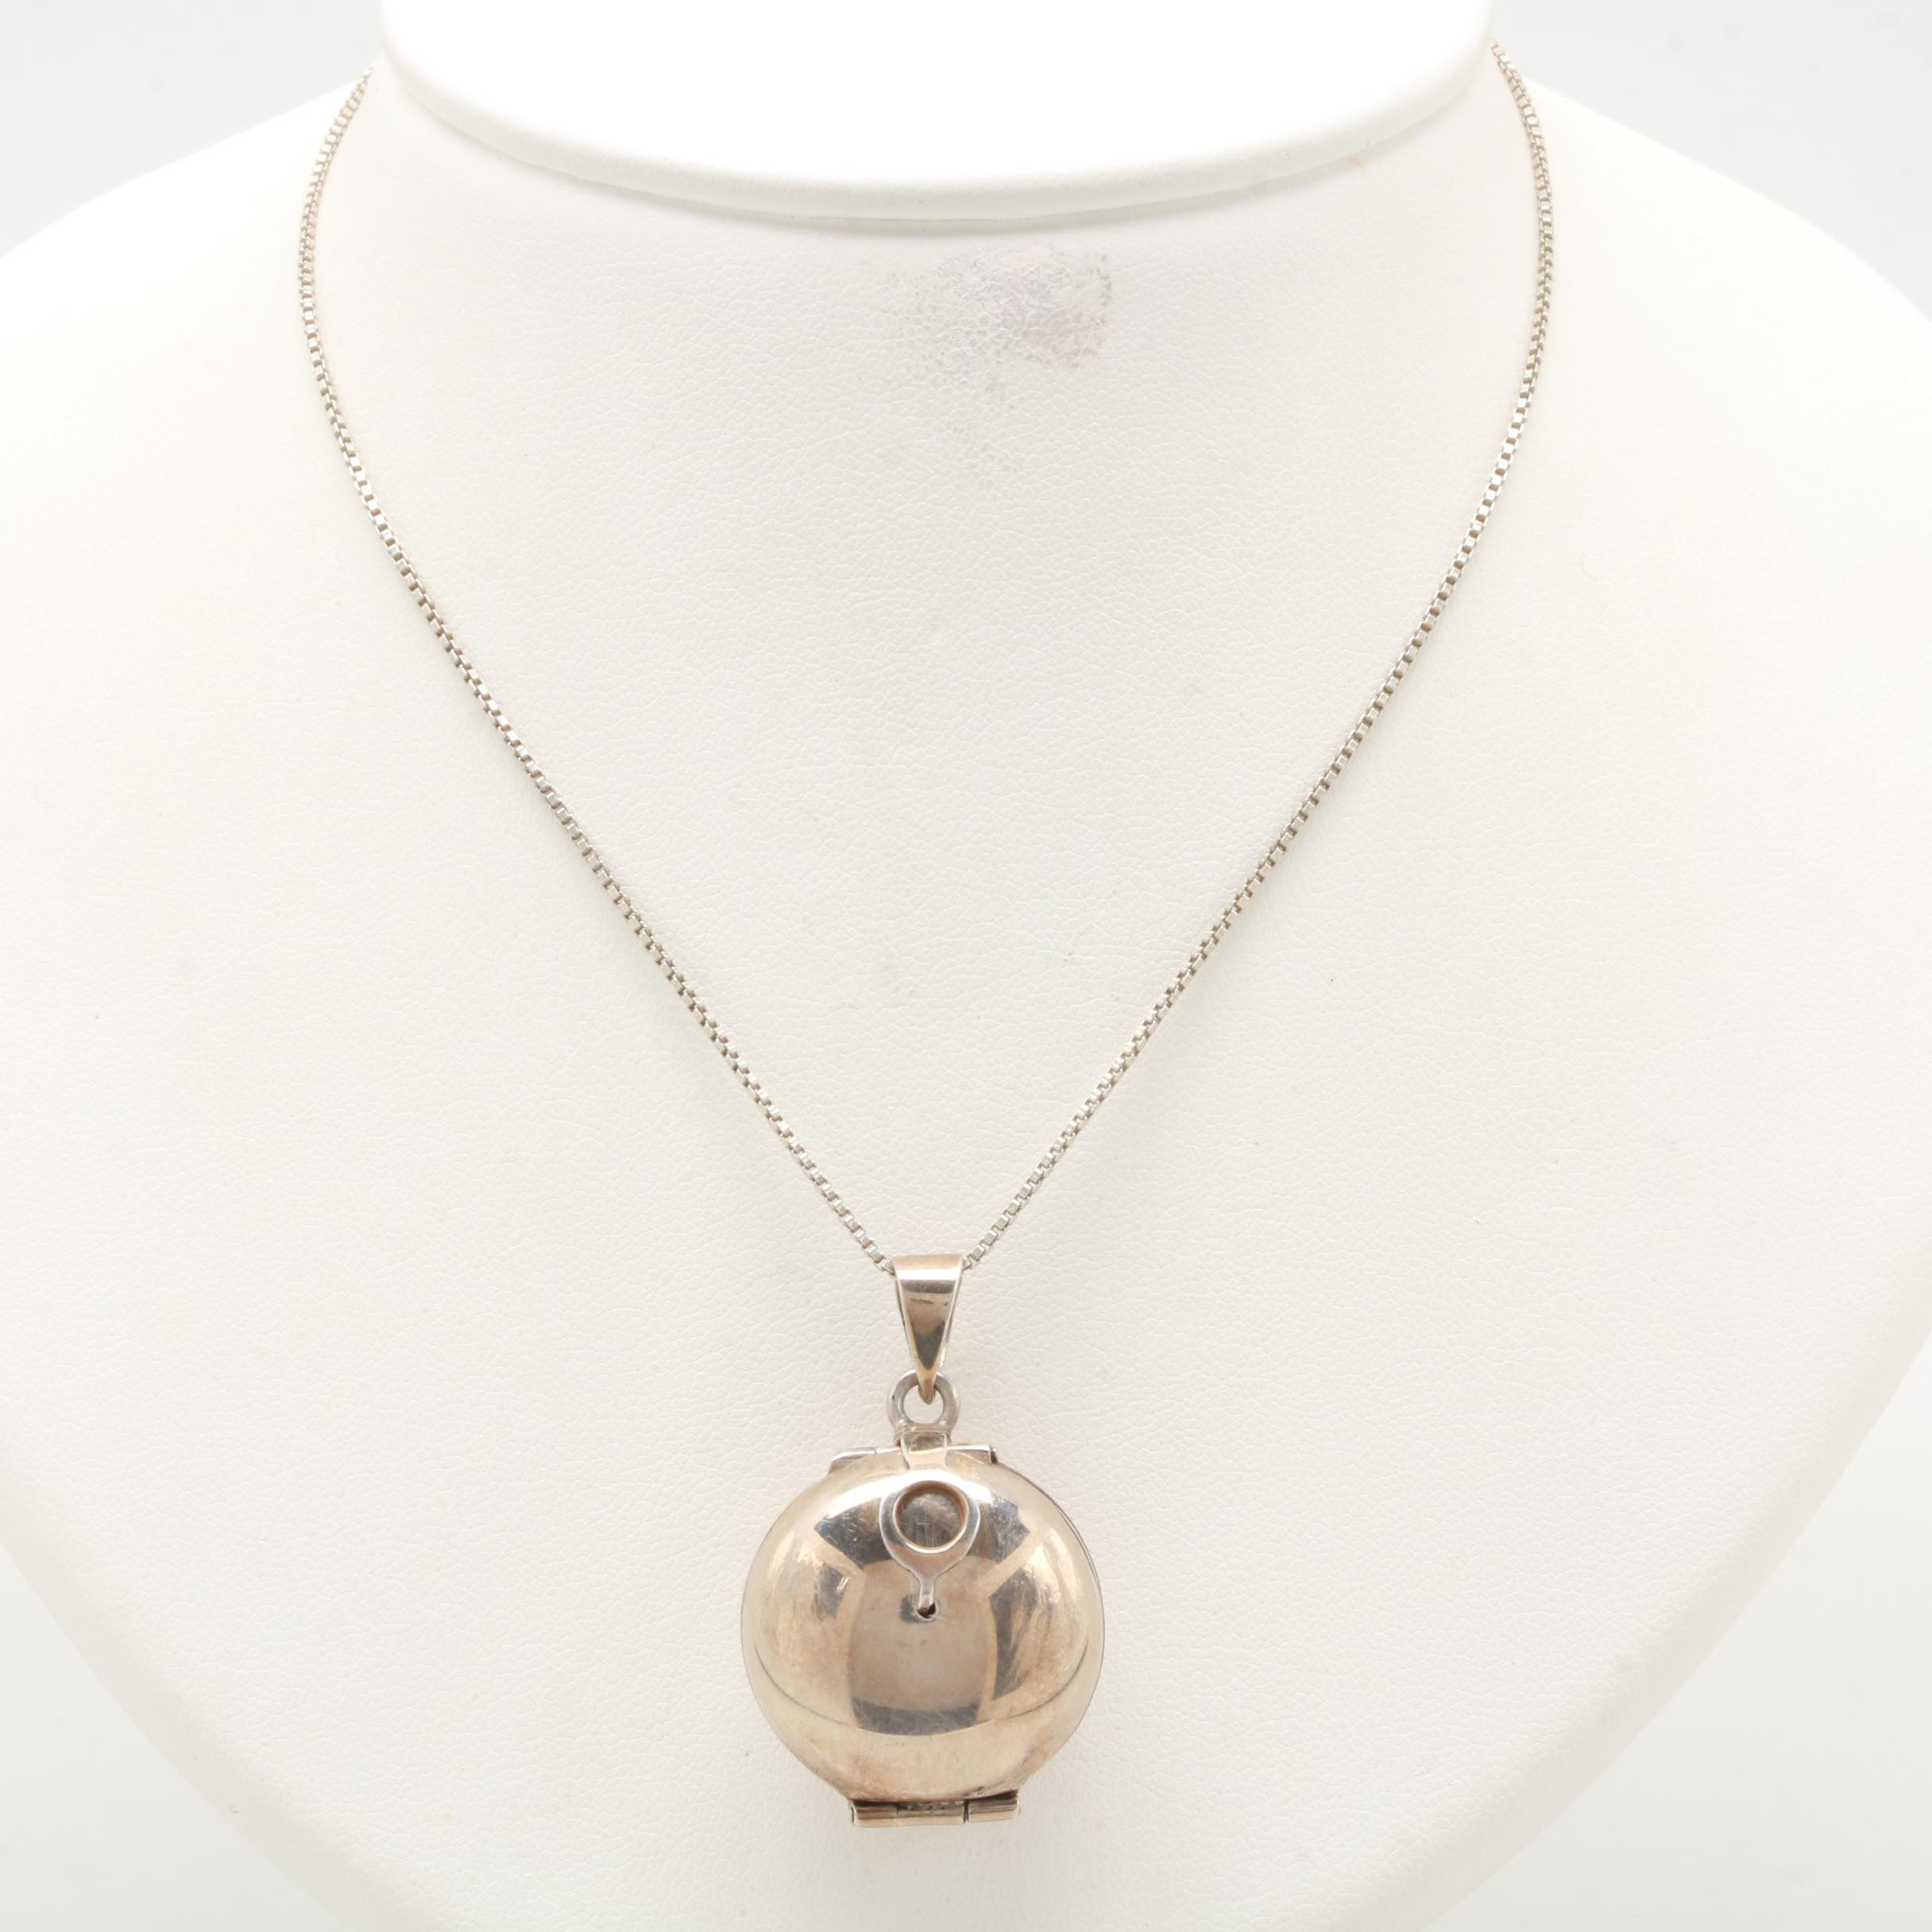 Sterling Silver Expanding Locket Pendant Necklace